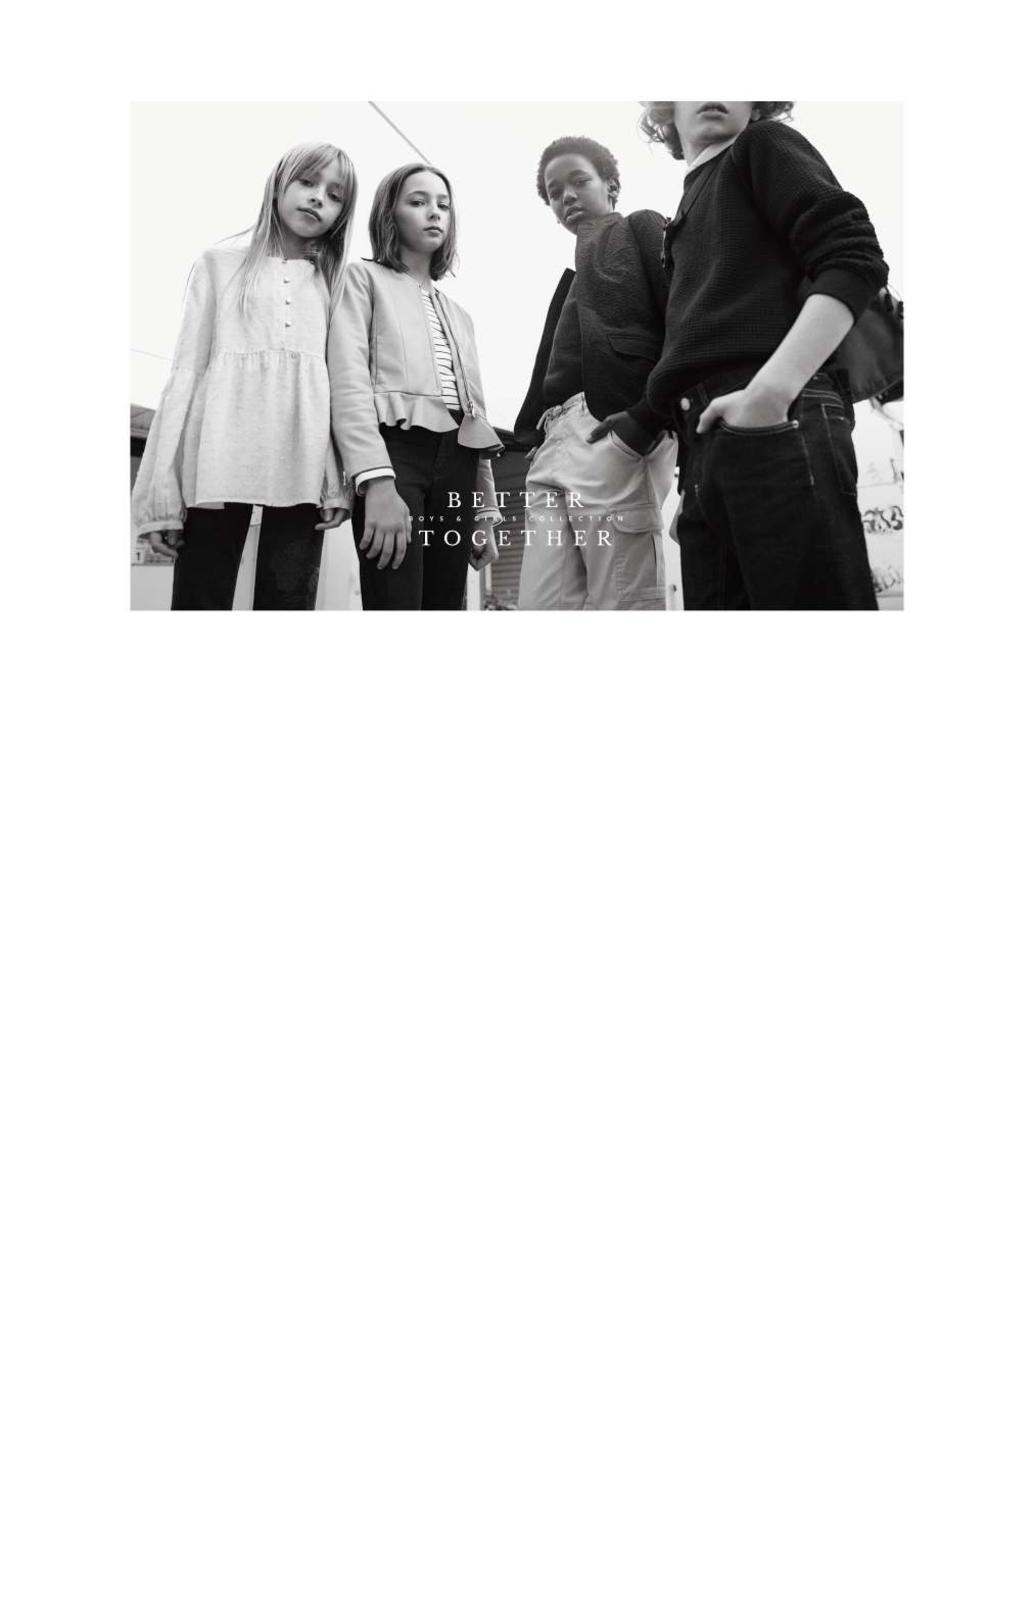 Massimo Dutti: Better Together